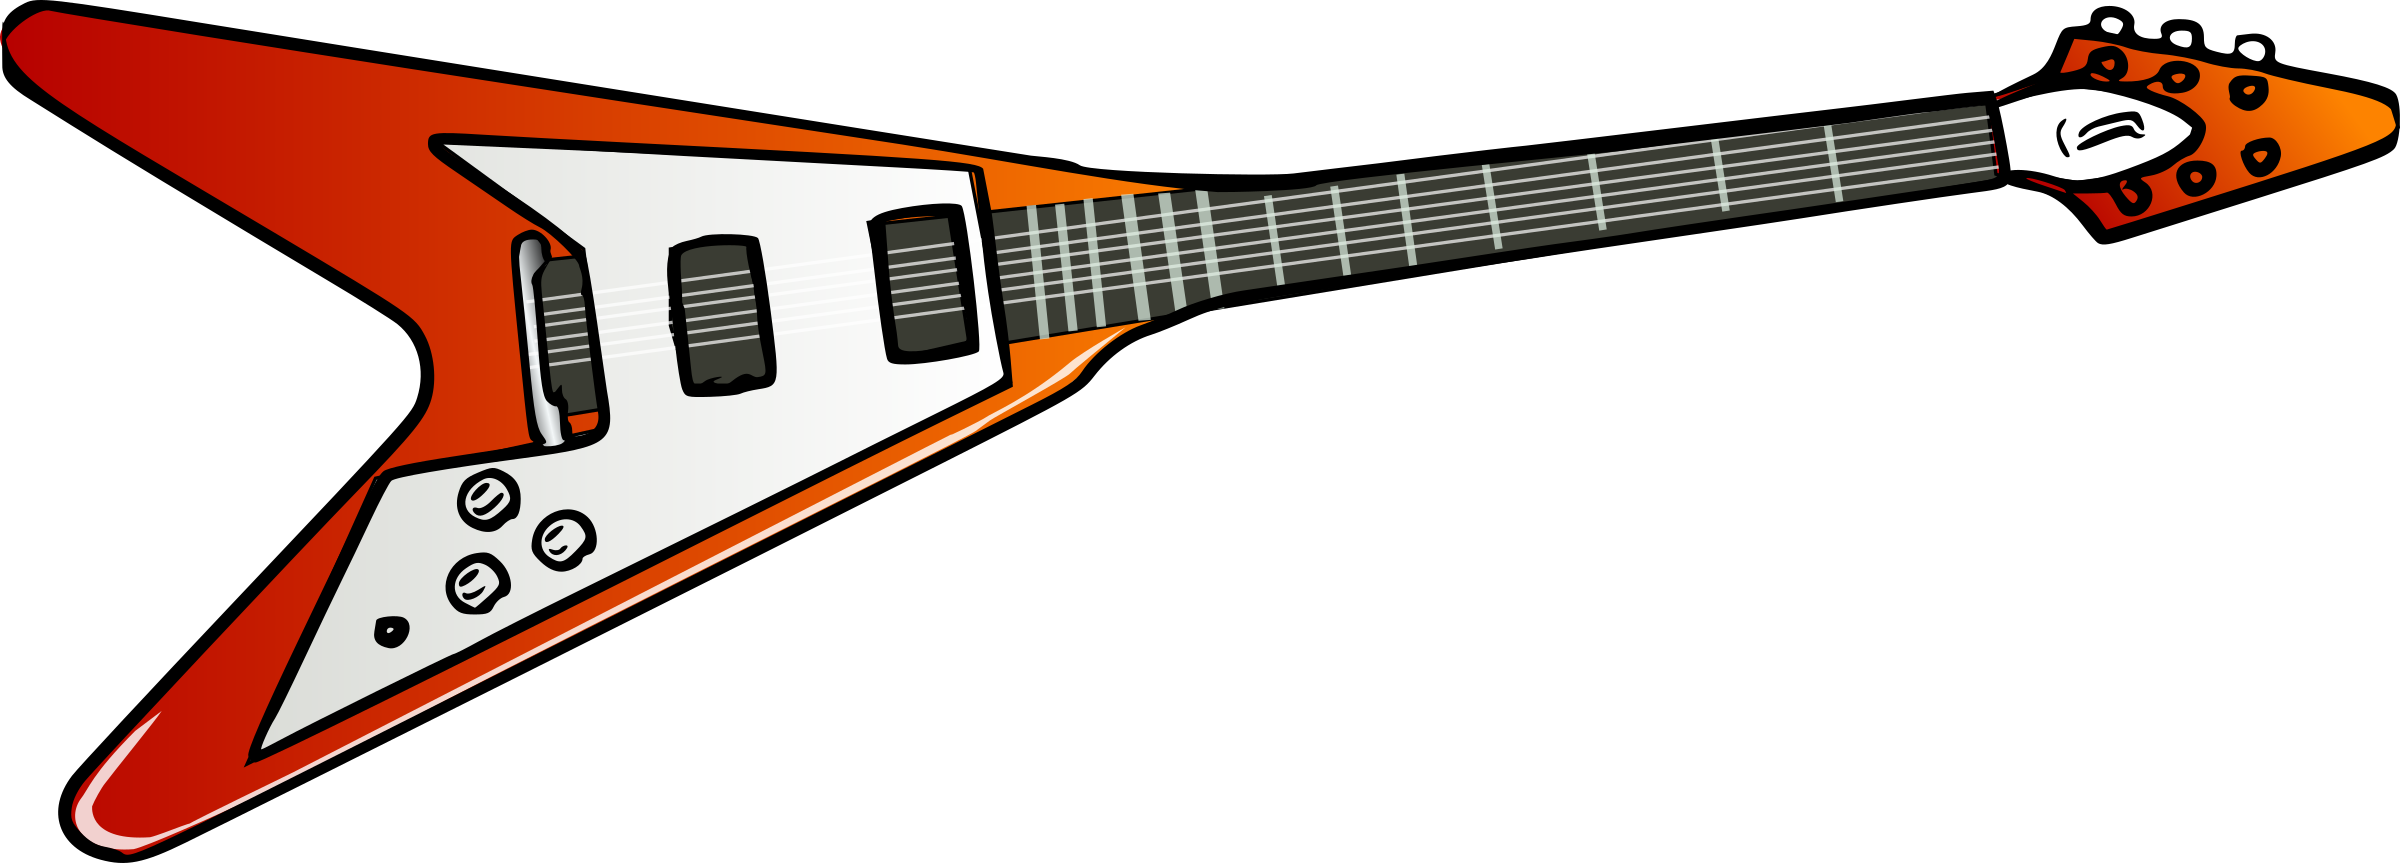 2400x863 Guitar Clipart Flying V